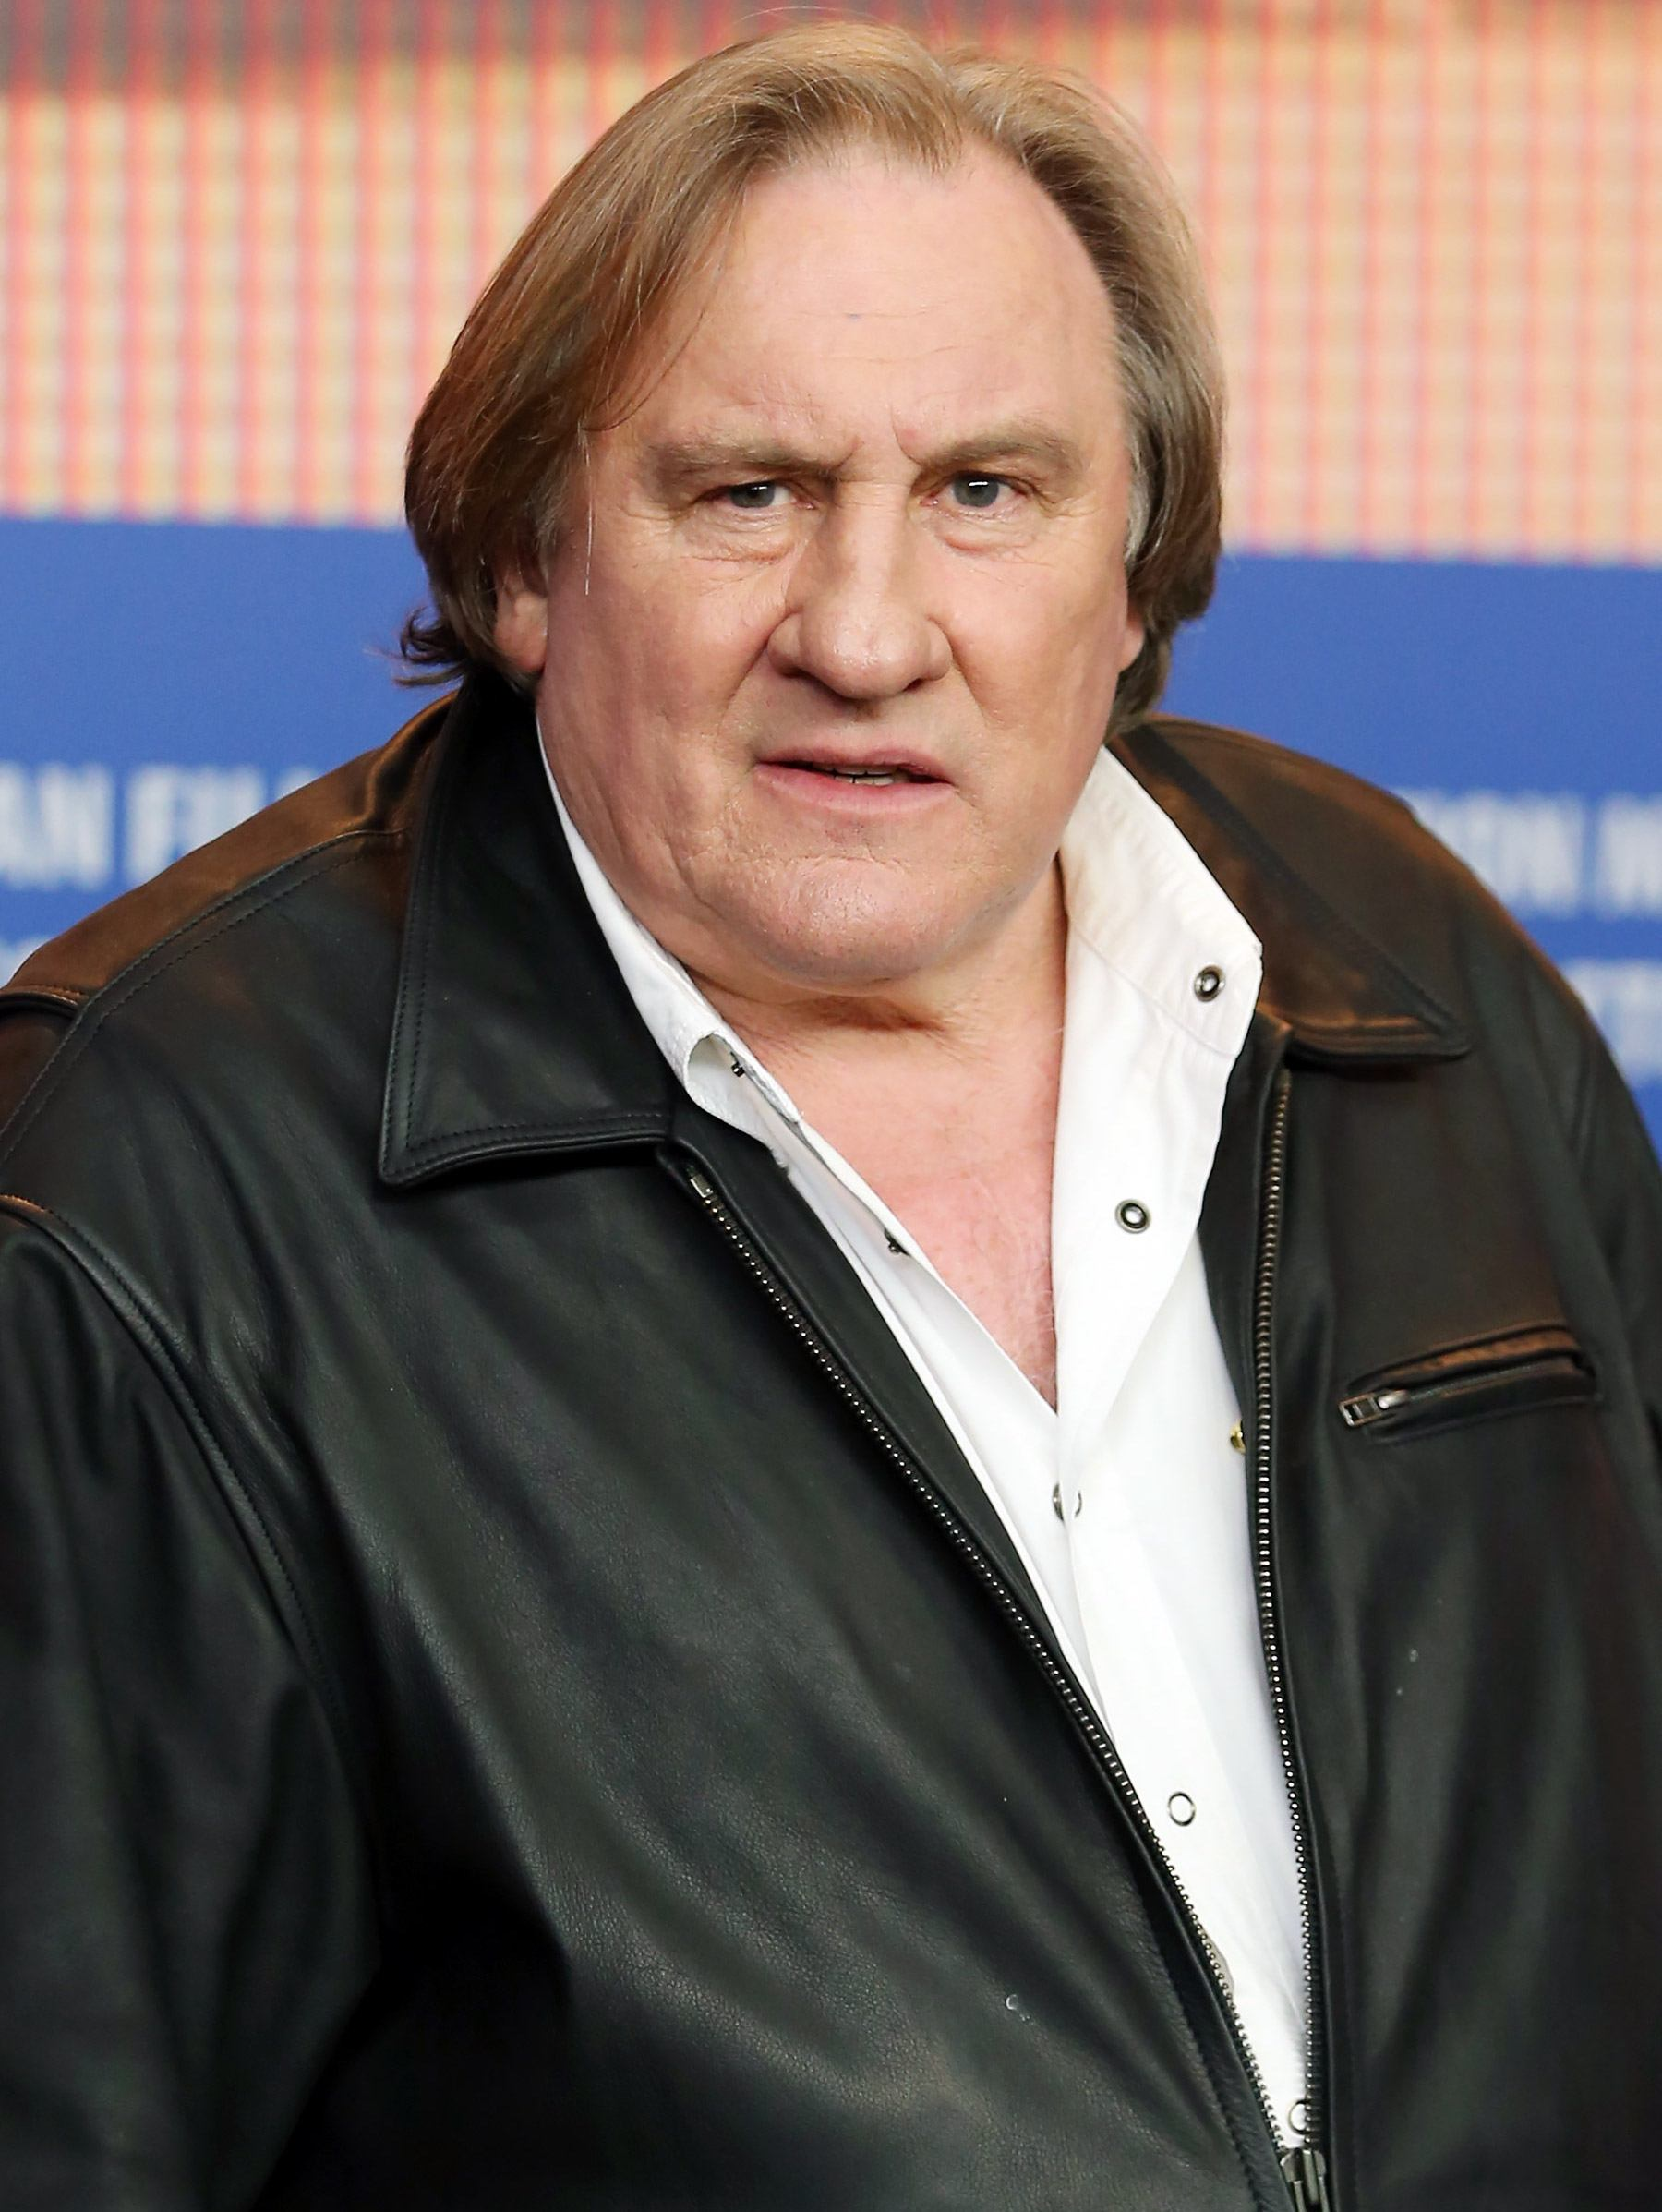 gerard depardieu 20 Celebrities You Didn't Know Had Committed Crimes